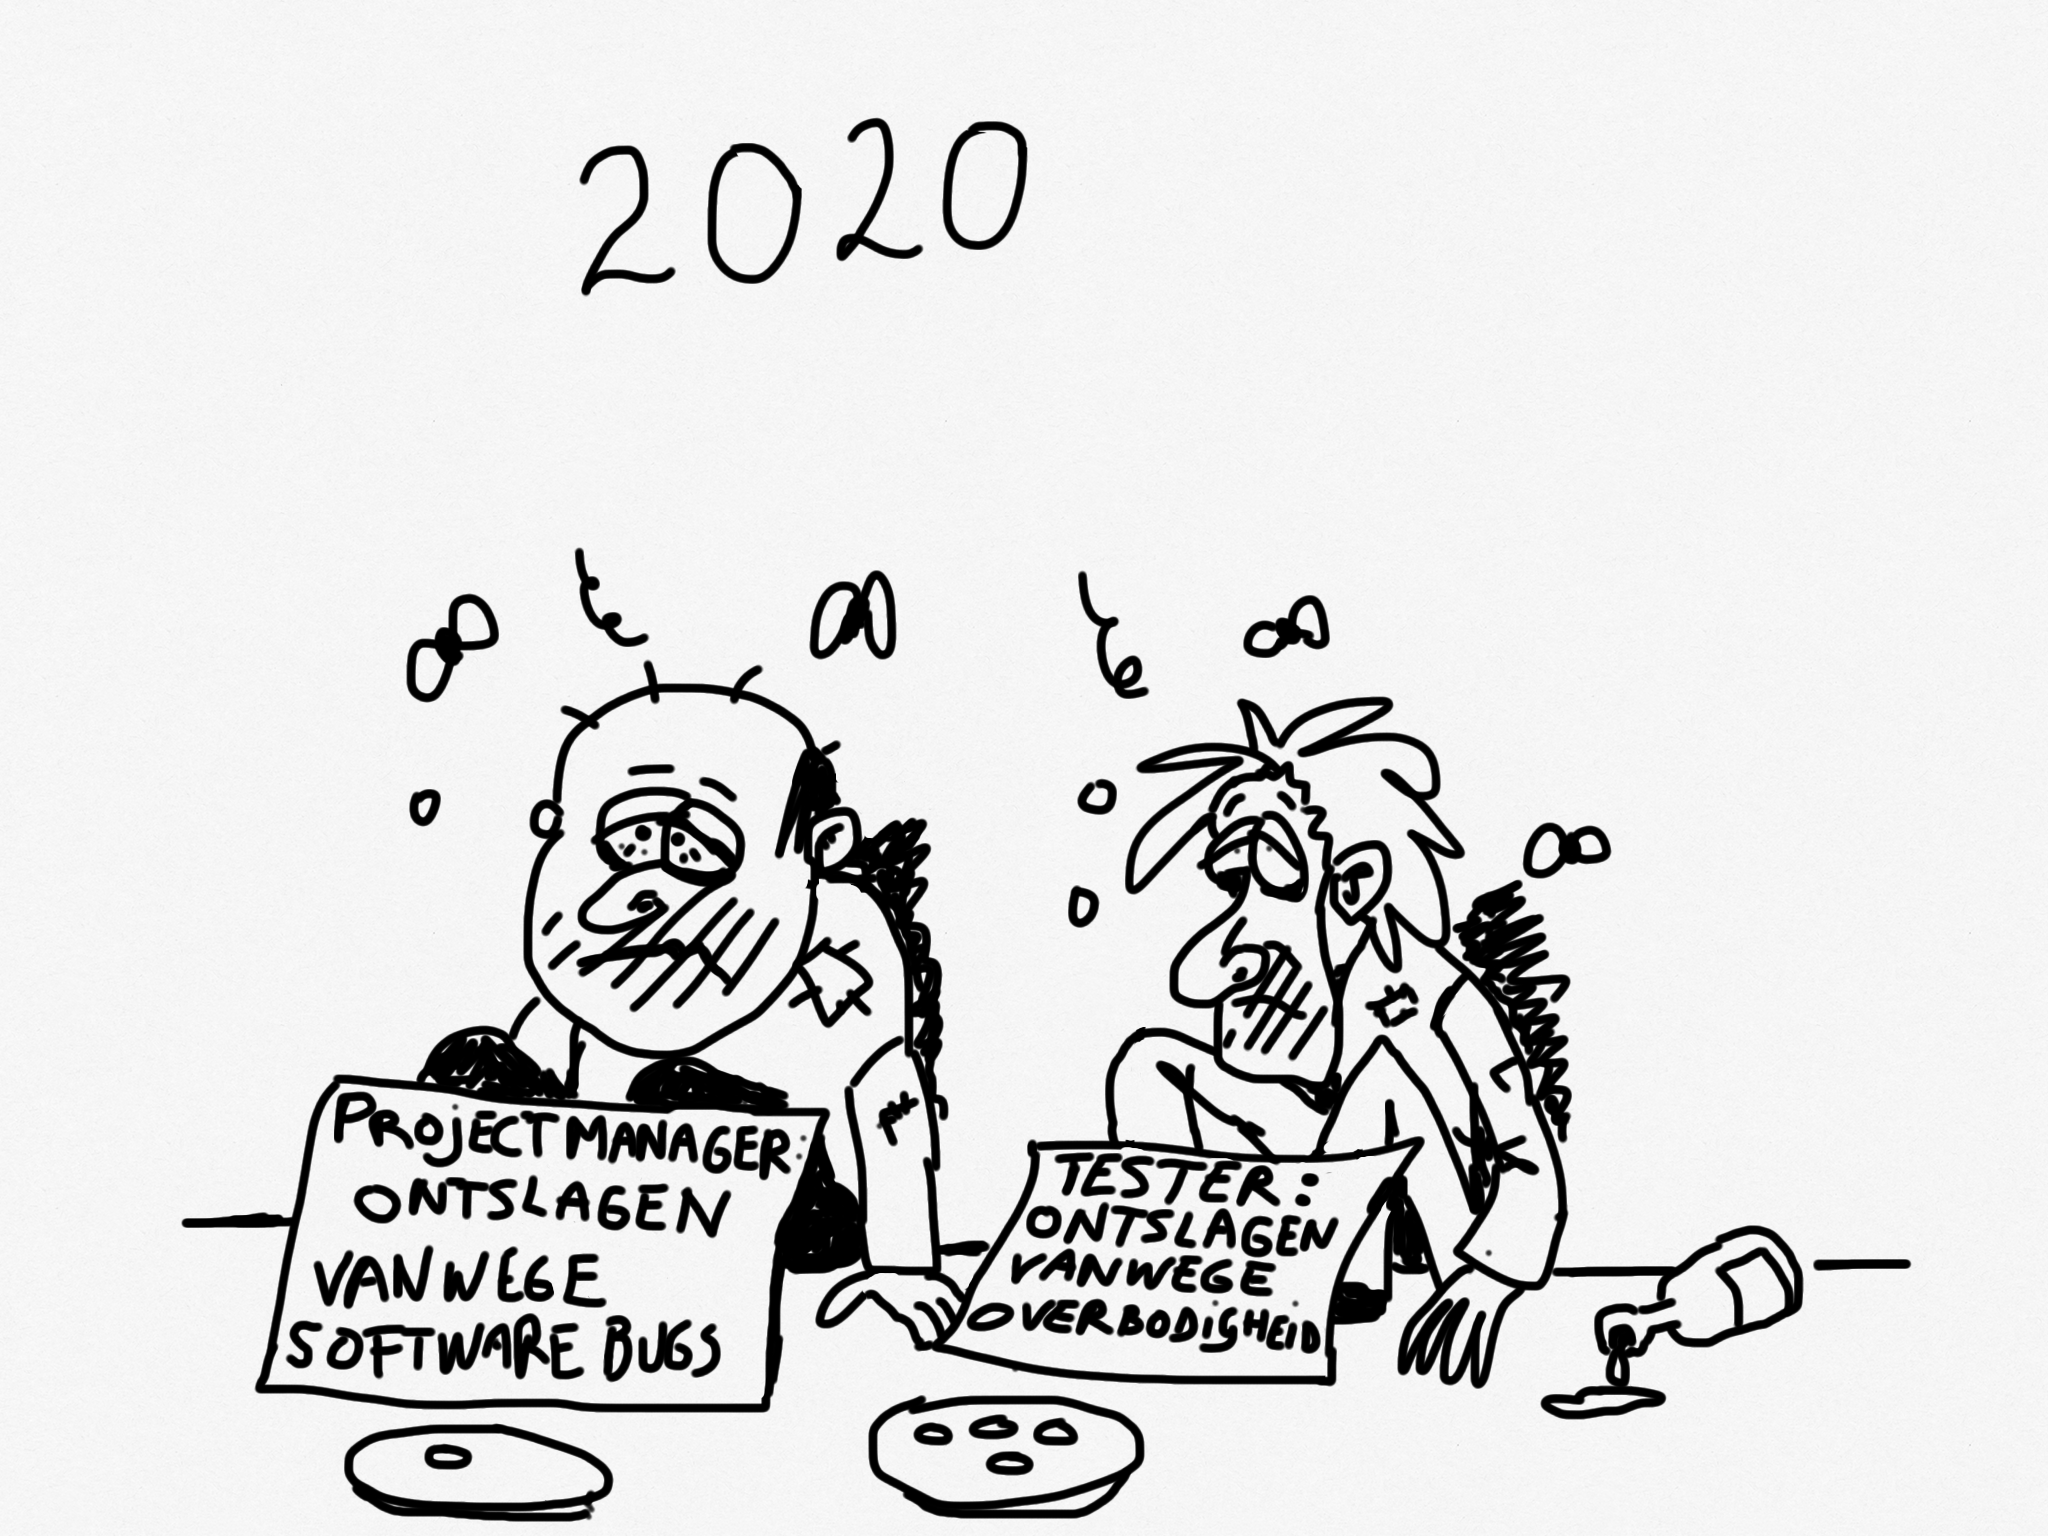 Testers overbodig in 2020